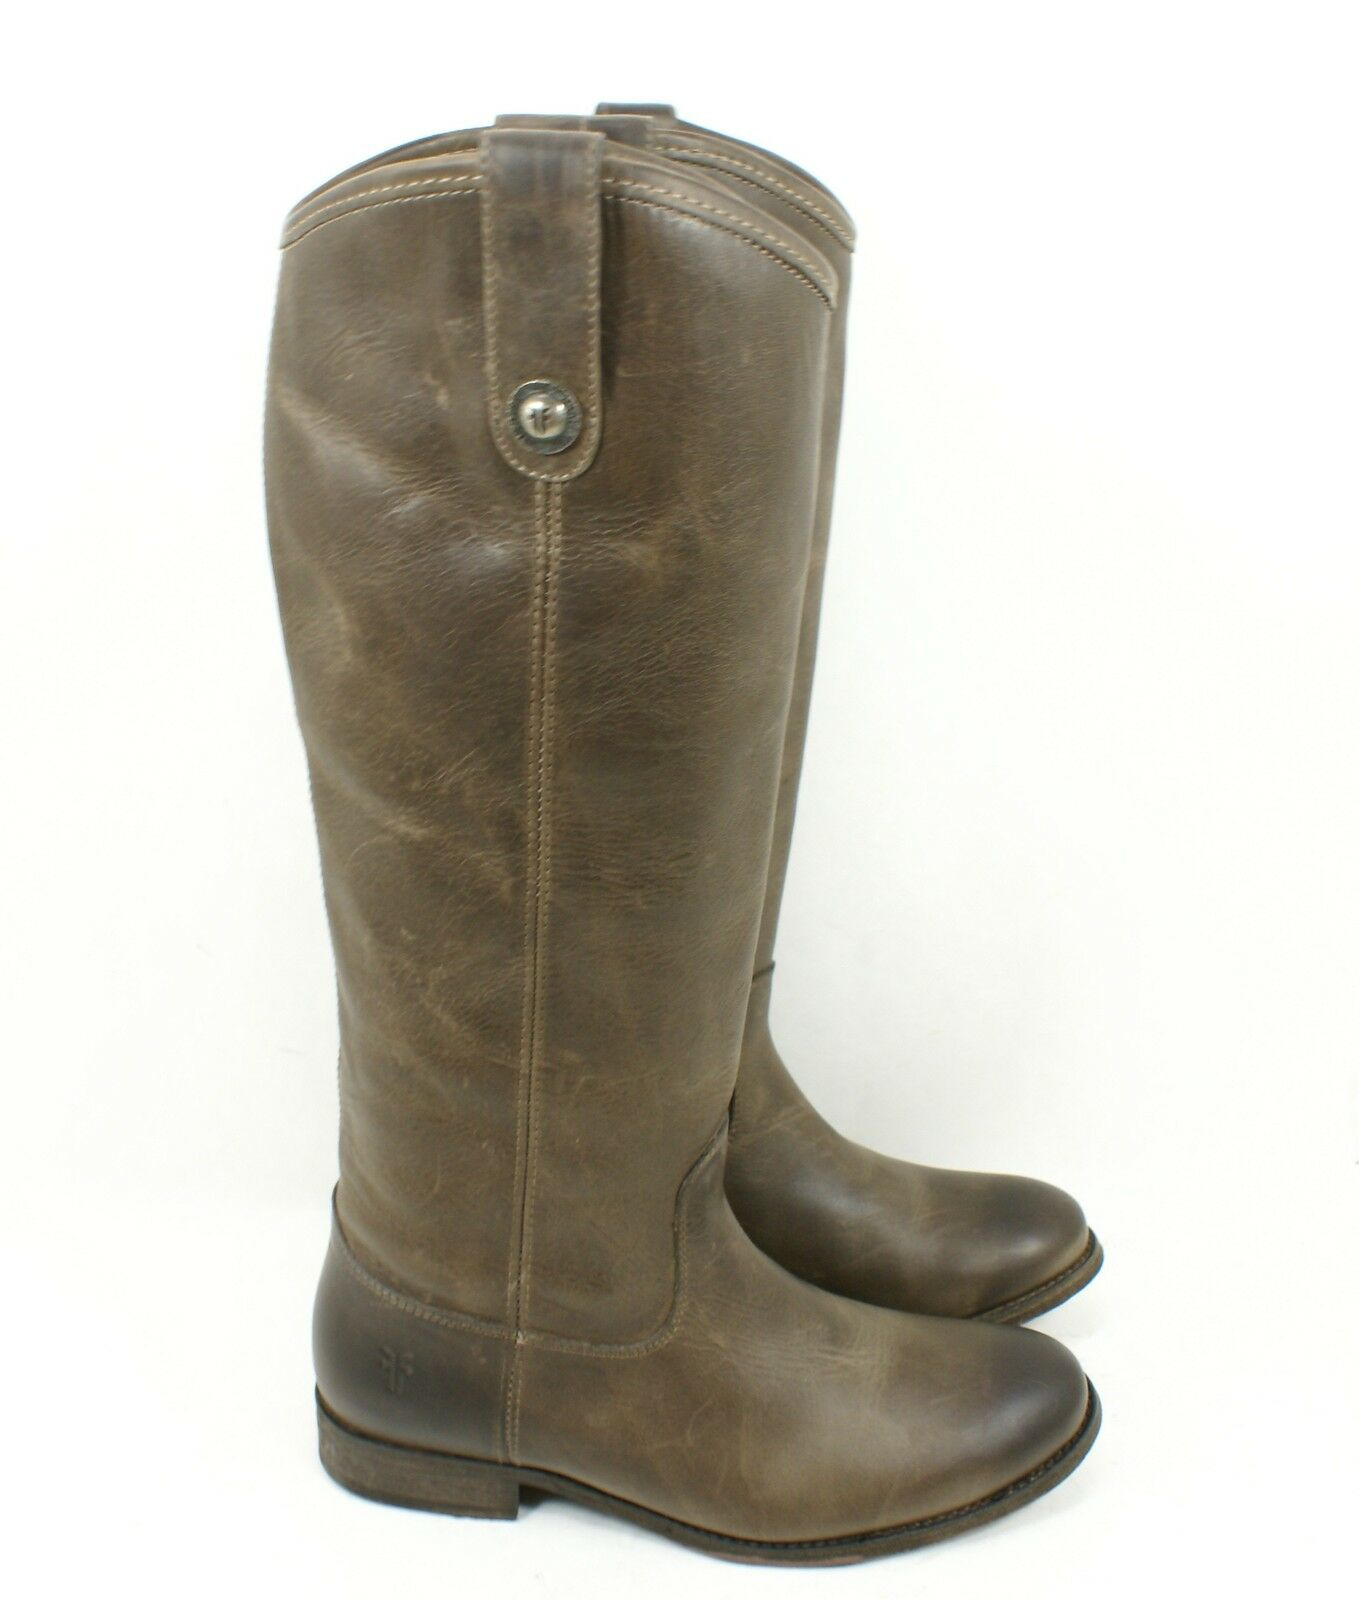 Frye Sz 6.5 B  'Melissa Button' Riding Boot Boot Boot Slate Brown Knee High Leather  370 A 9c5a79